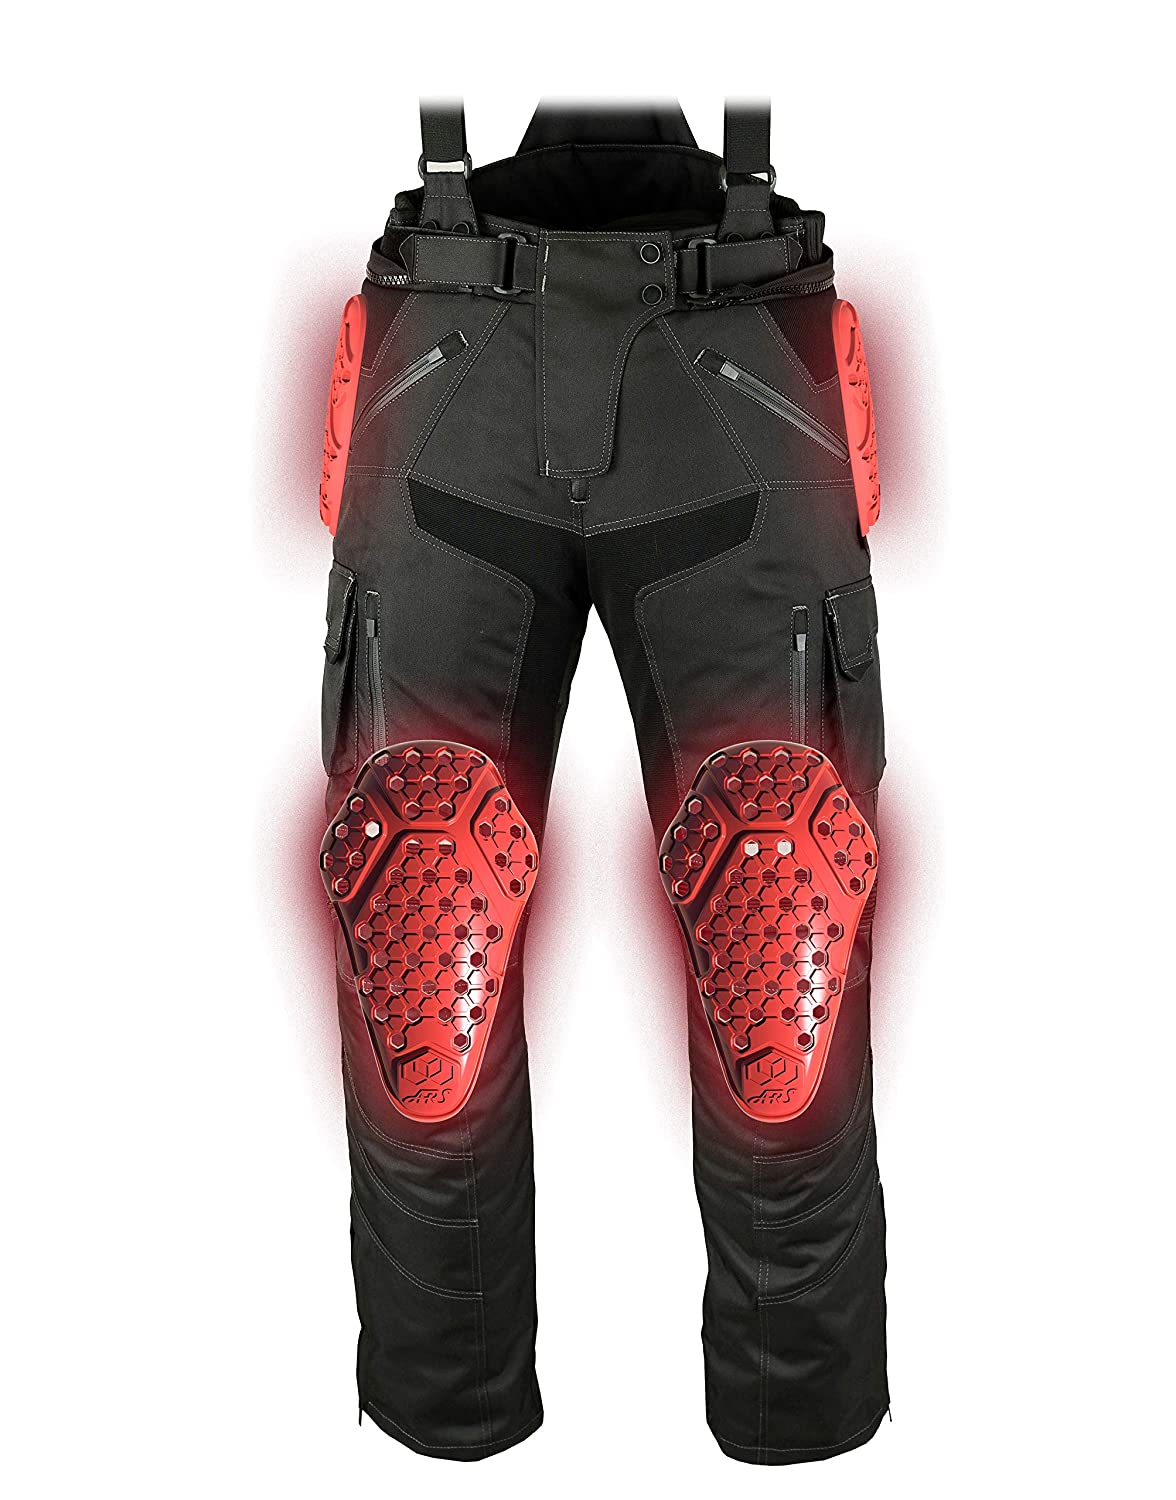 Set of 2 ,Red//One Size NSTAR Knee Protector,ARS Replacement Knee Pads AP-EVO-K,Street Motorcycle Riding Body Armor